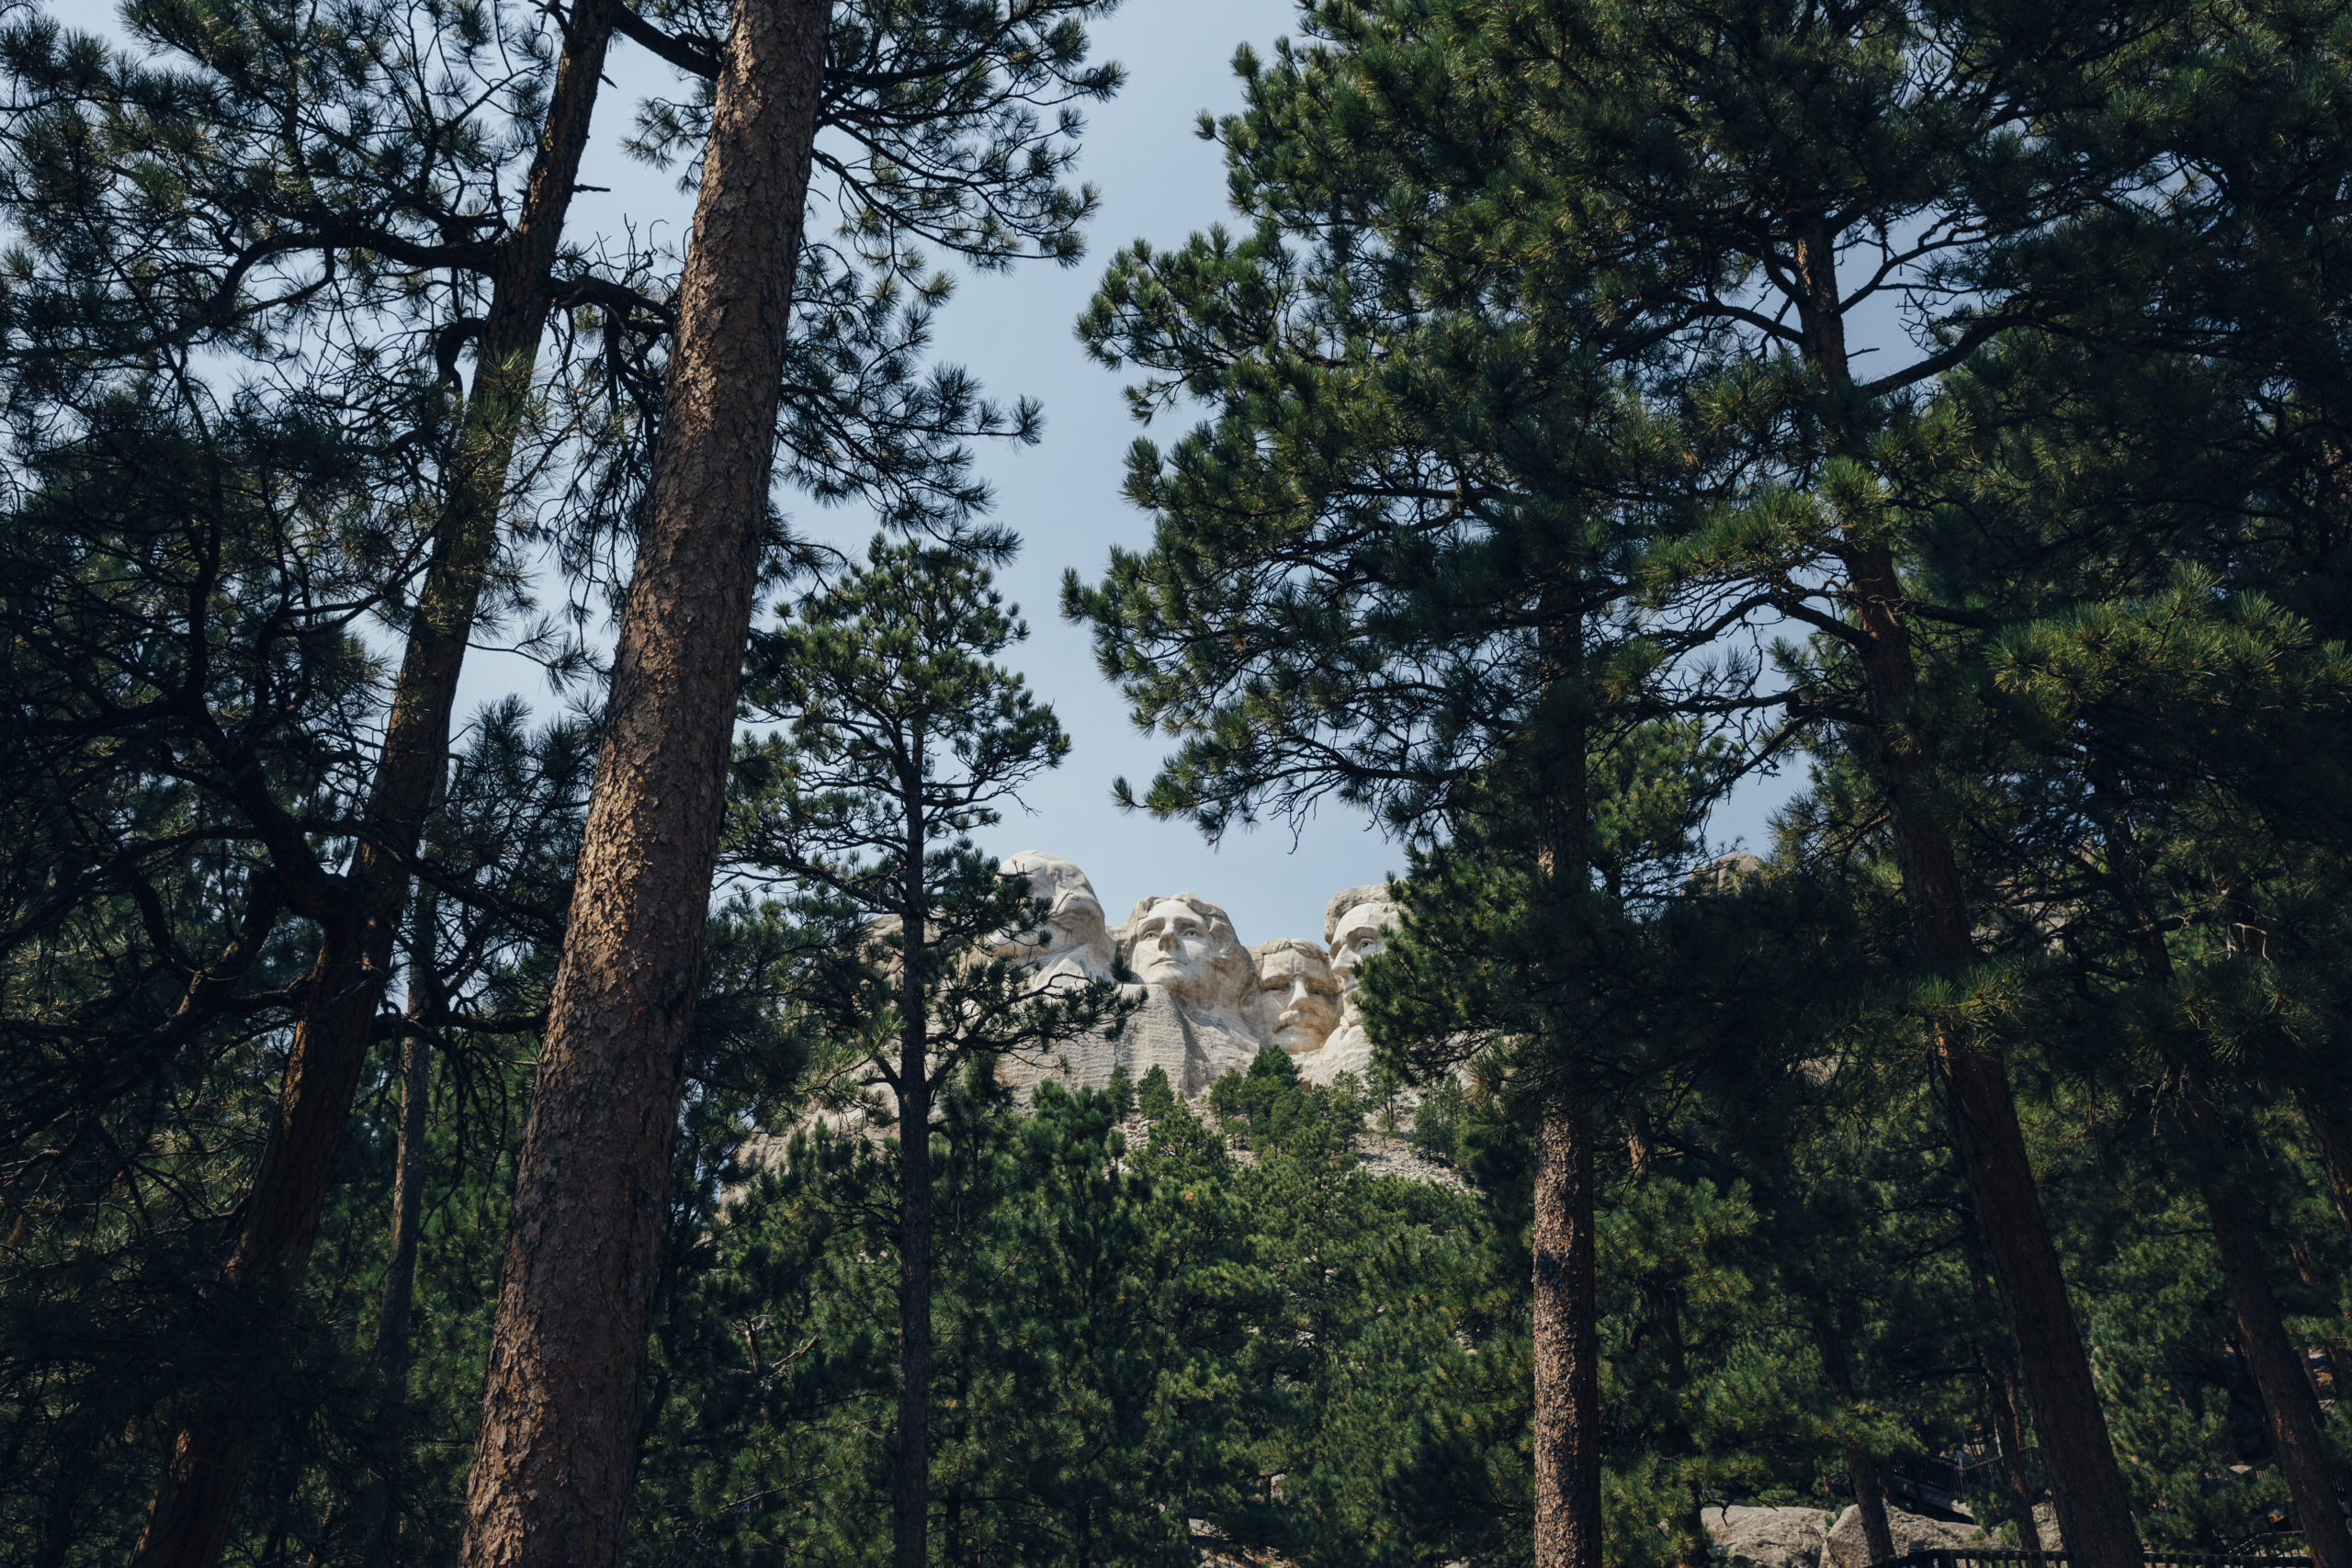 Mount Rushmore National Monument in South Dakota as seen through a stand of pine trees